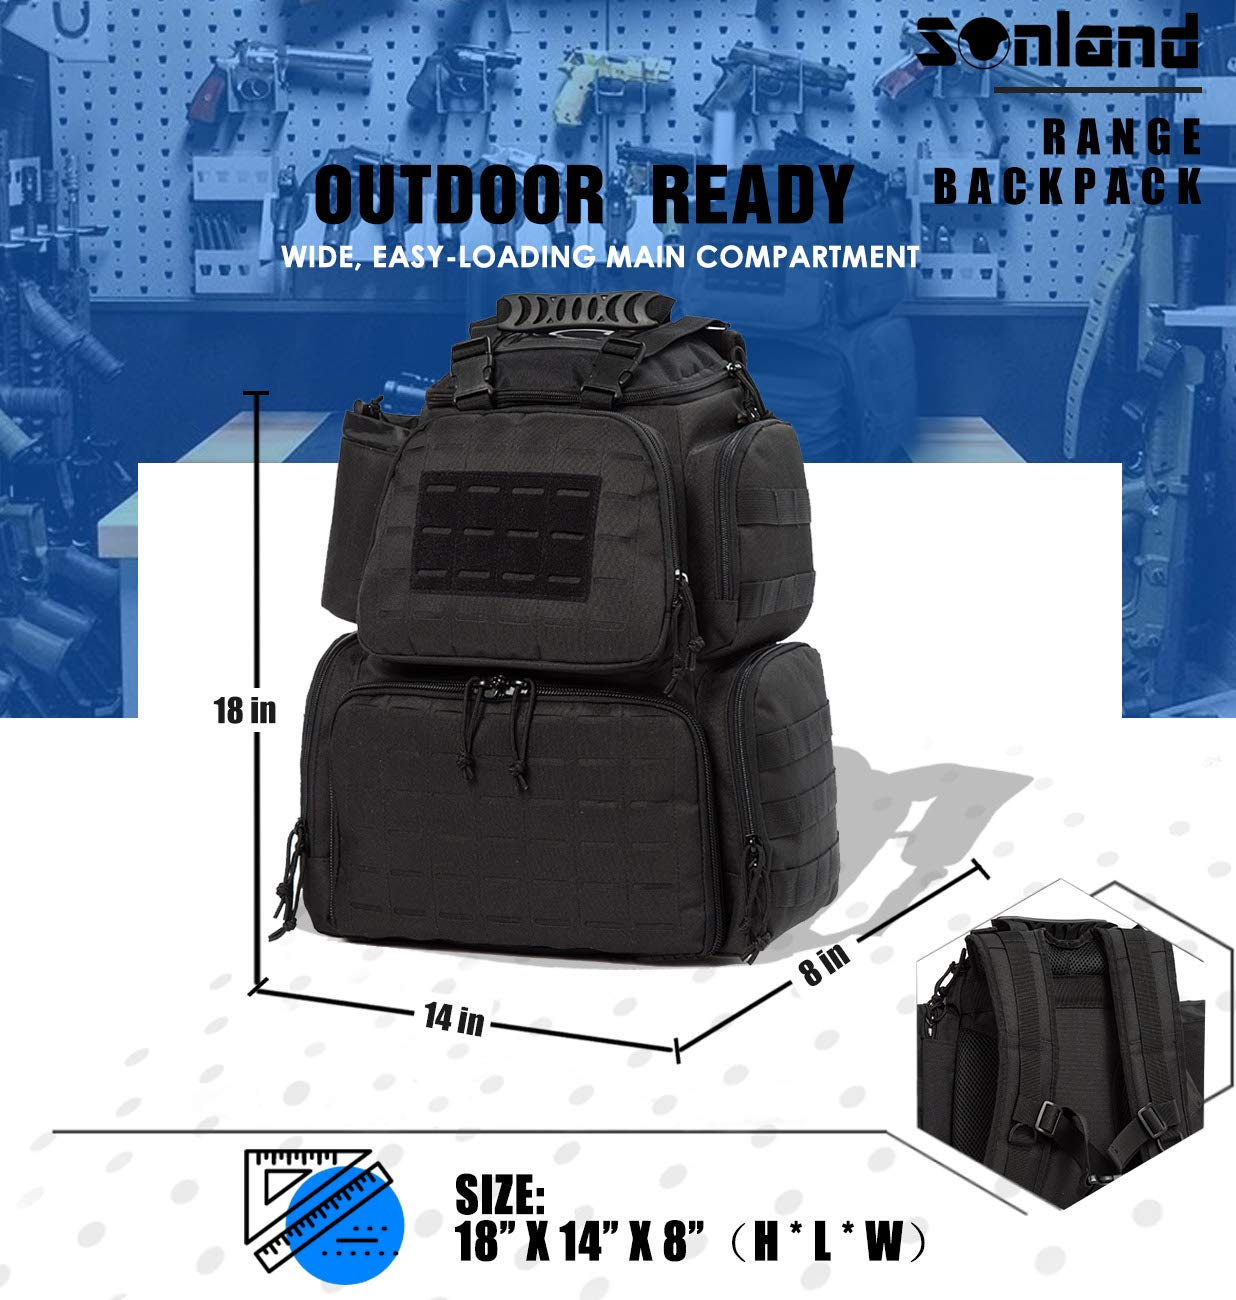 SUNLAND Range Bag Backpack,Gun Backpack with 3-Pistol Case and Protective Rain Cover,Tactical molle System & Lockable zippers-18'' x 14'' x 8'' (Blk) by SUNLAND (Image #8)